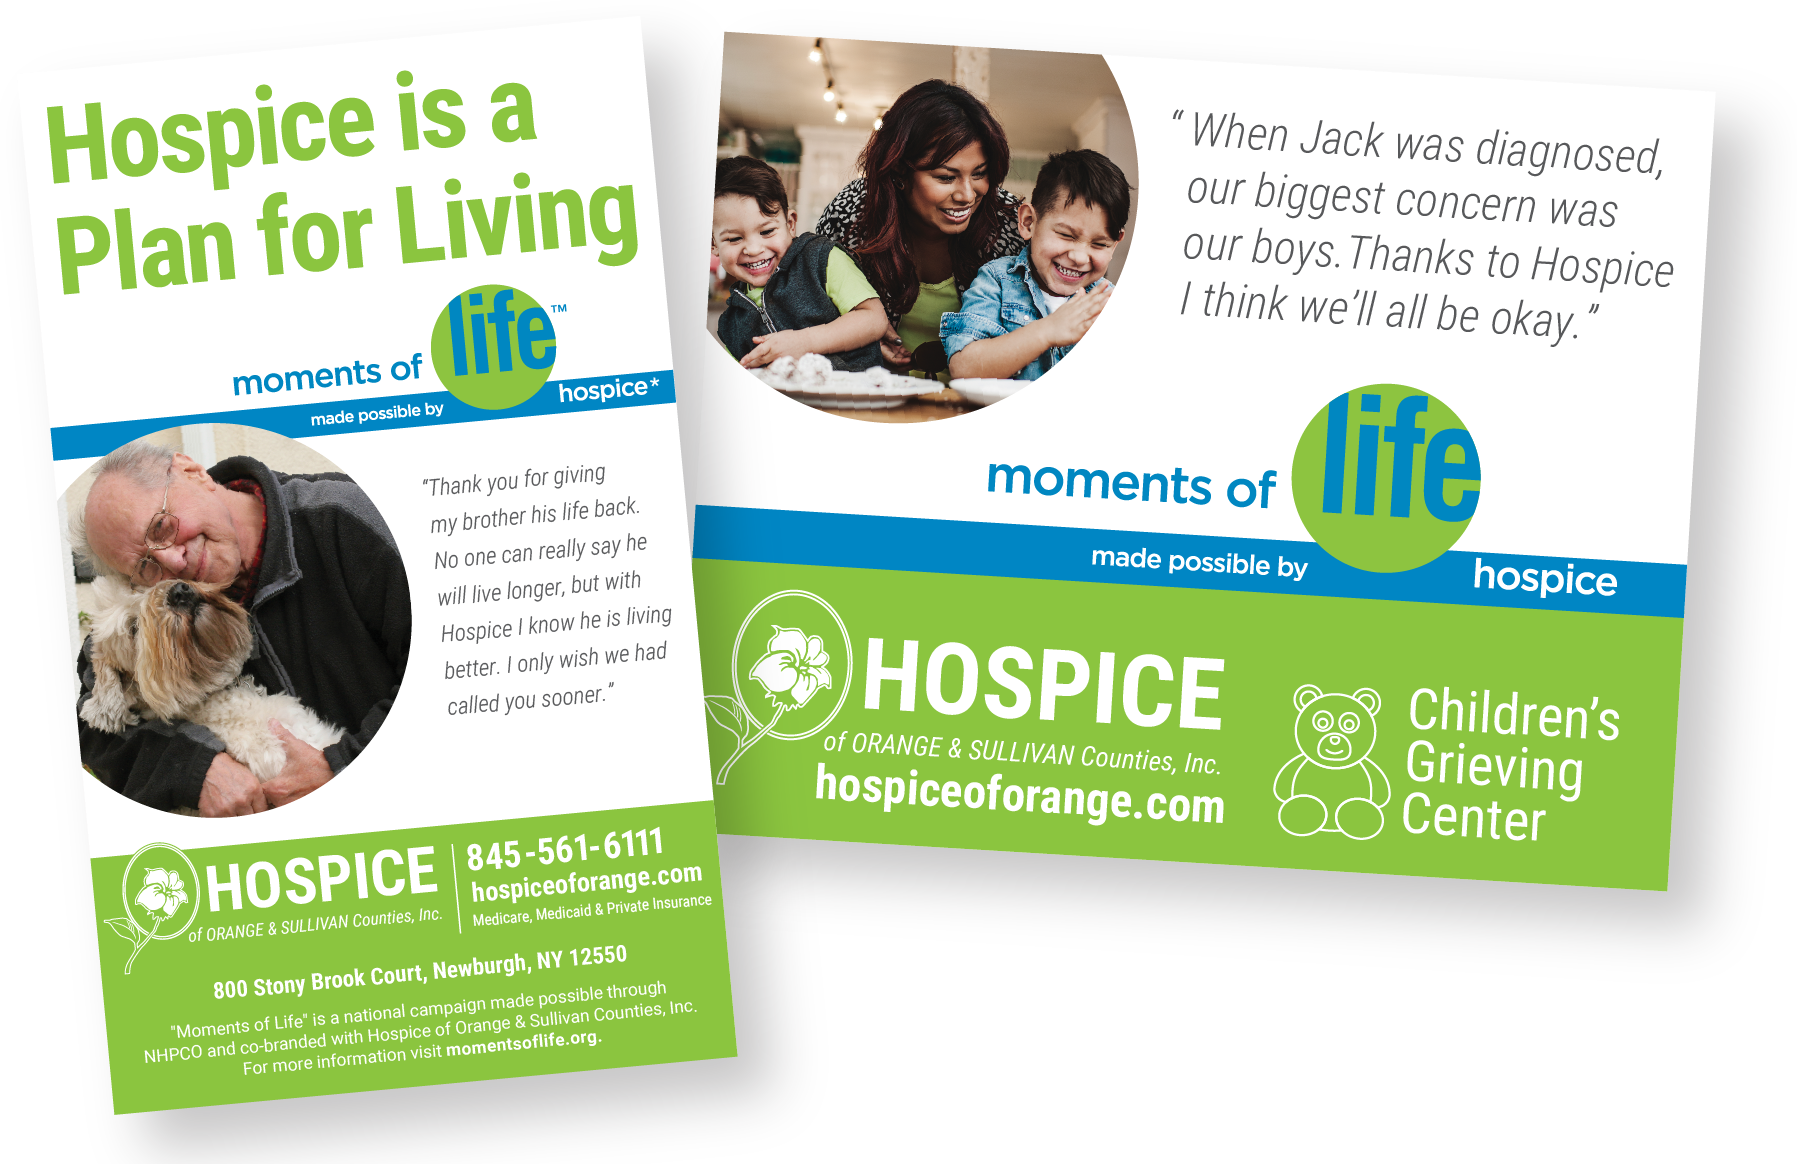 Hospice Moments of Life Campaign